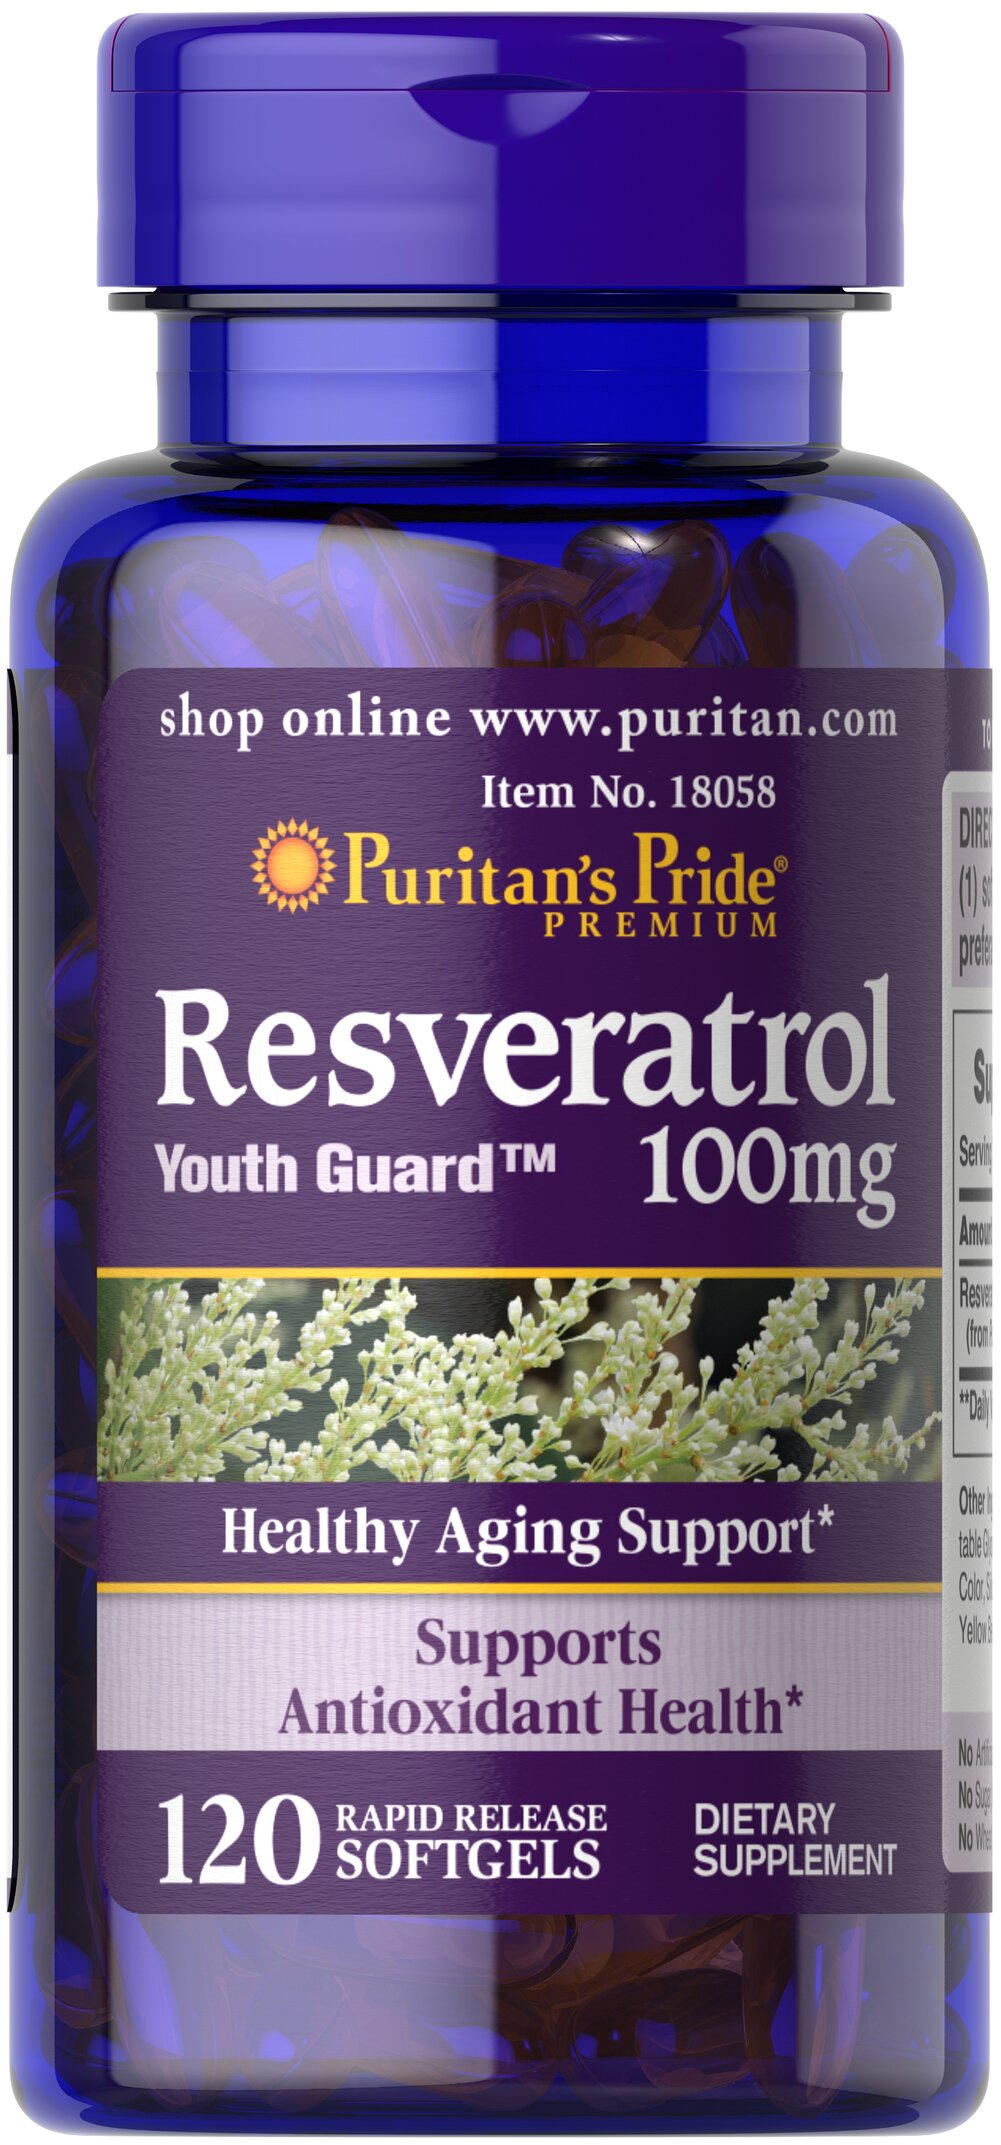 Resveratrol 100 mg <p></p>•    Supports heart health by supporting blood flow and vascular function**<br />•    Has antioxidant properties**<br />•    Helps fight free radicals**<br />•    Supports sugar metabolism**<br /><br />Famous in Europe for its antioxidant support, Resveratrol is now becoming widely known in America as a reliable way to hel